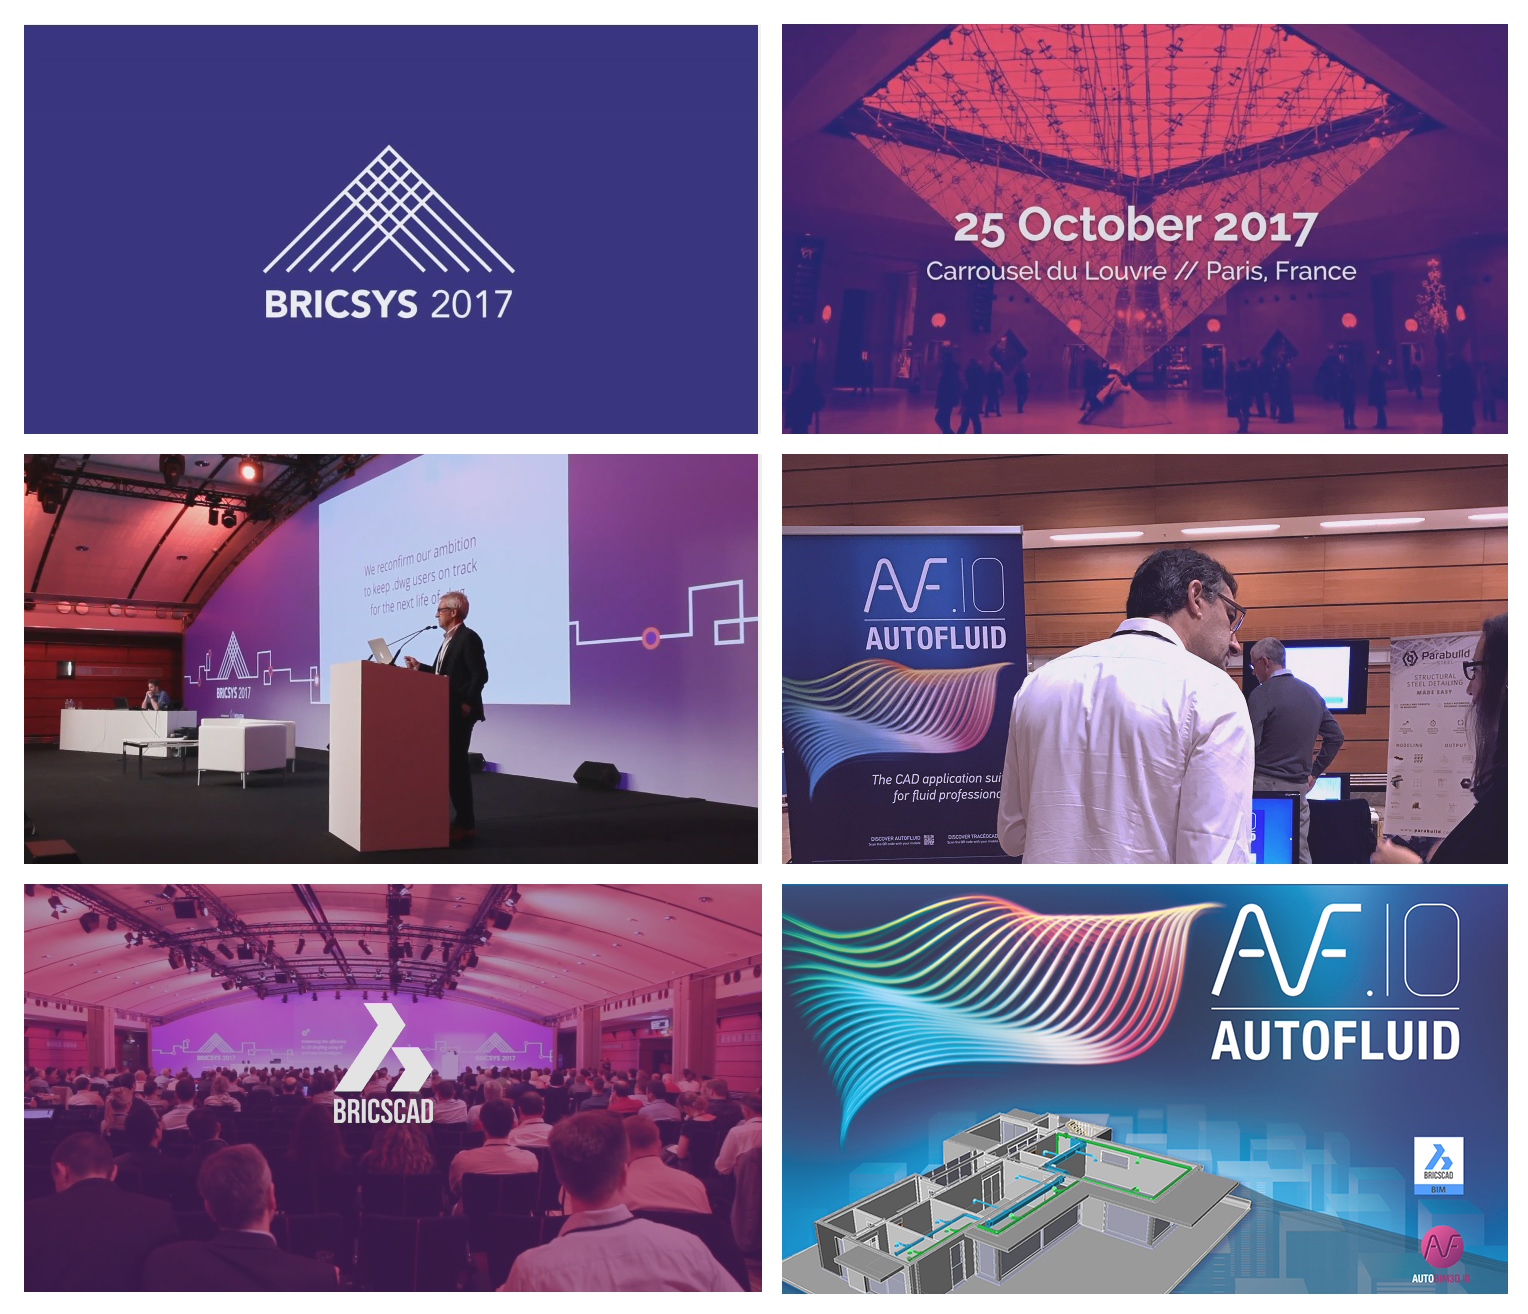 Photos of Parris 2017 Bricsys Conference with Tracéocad team